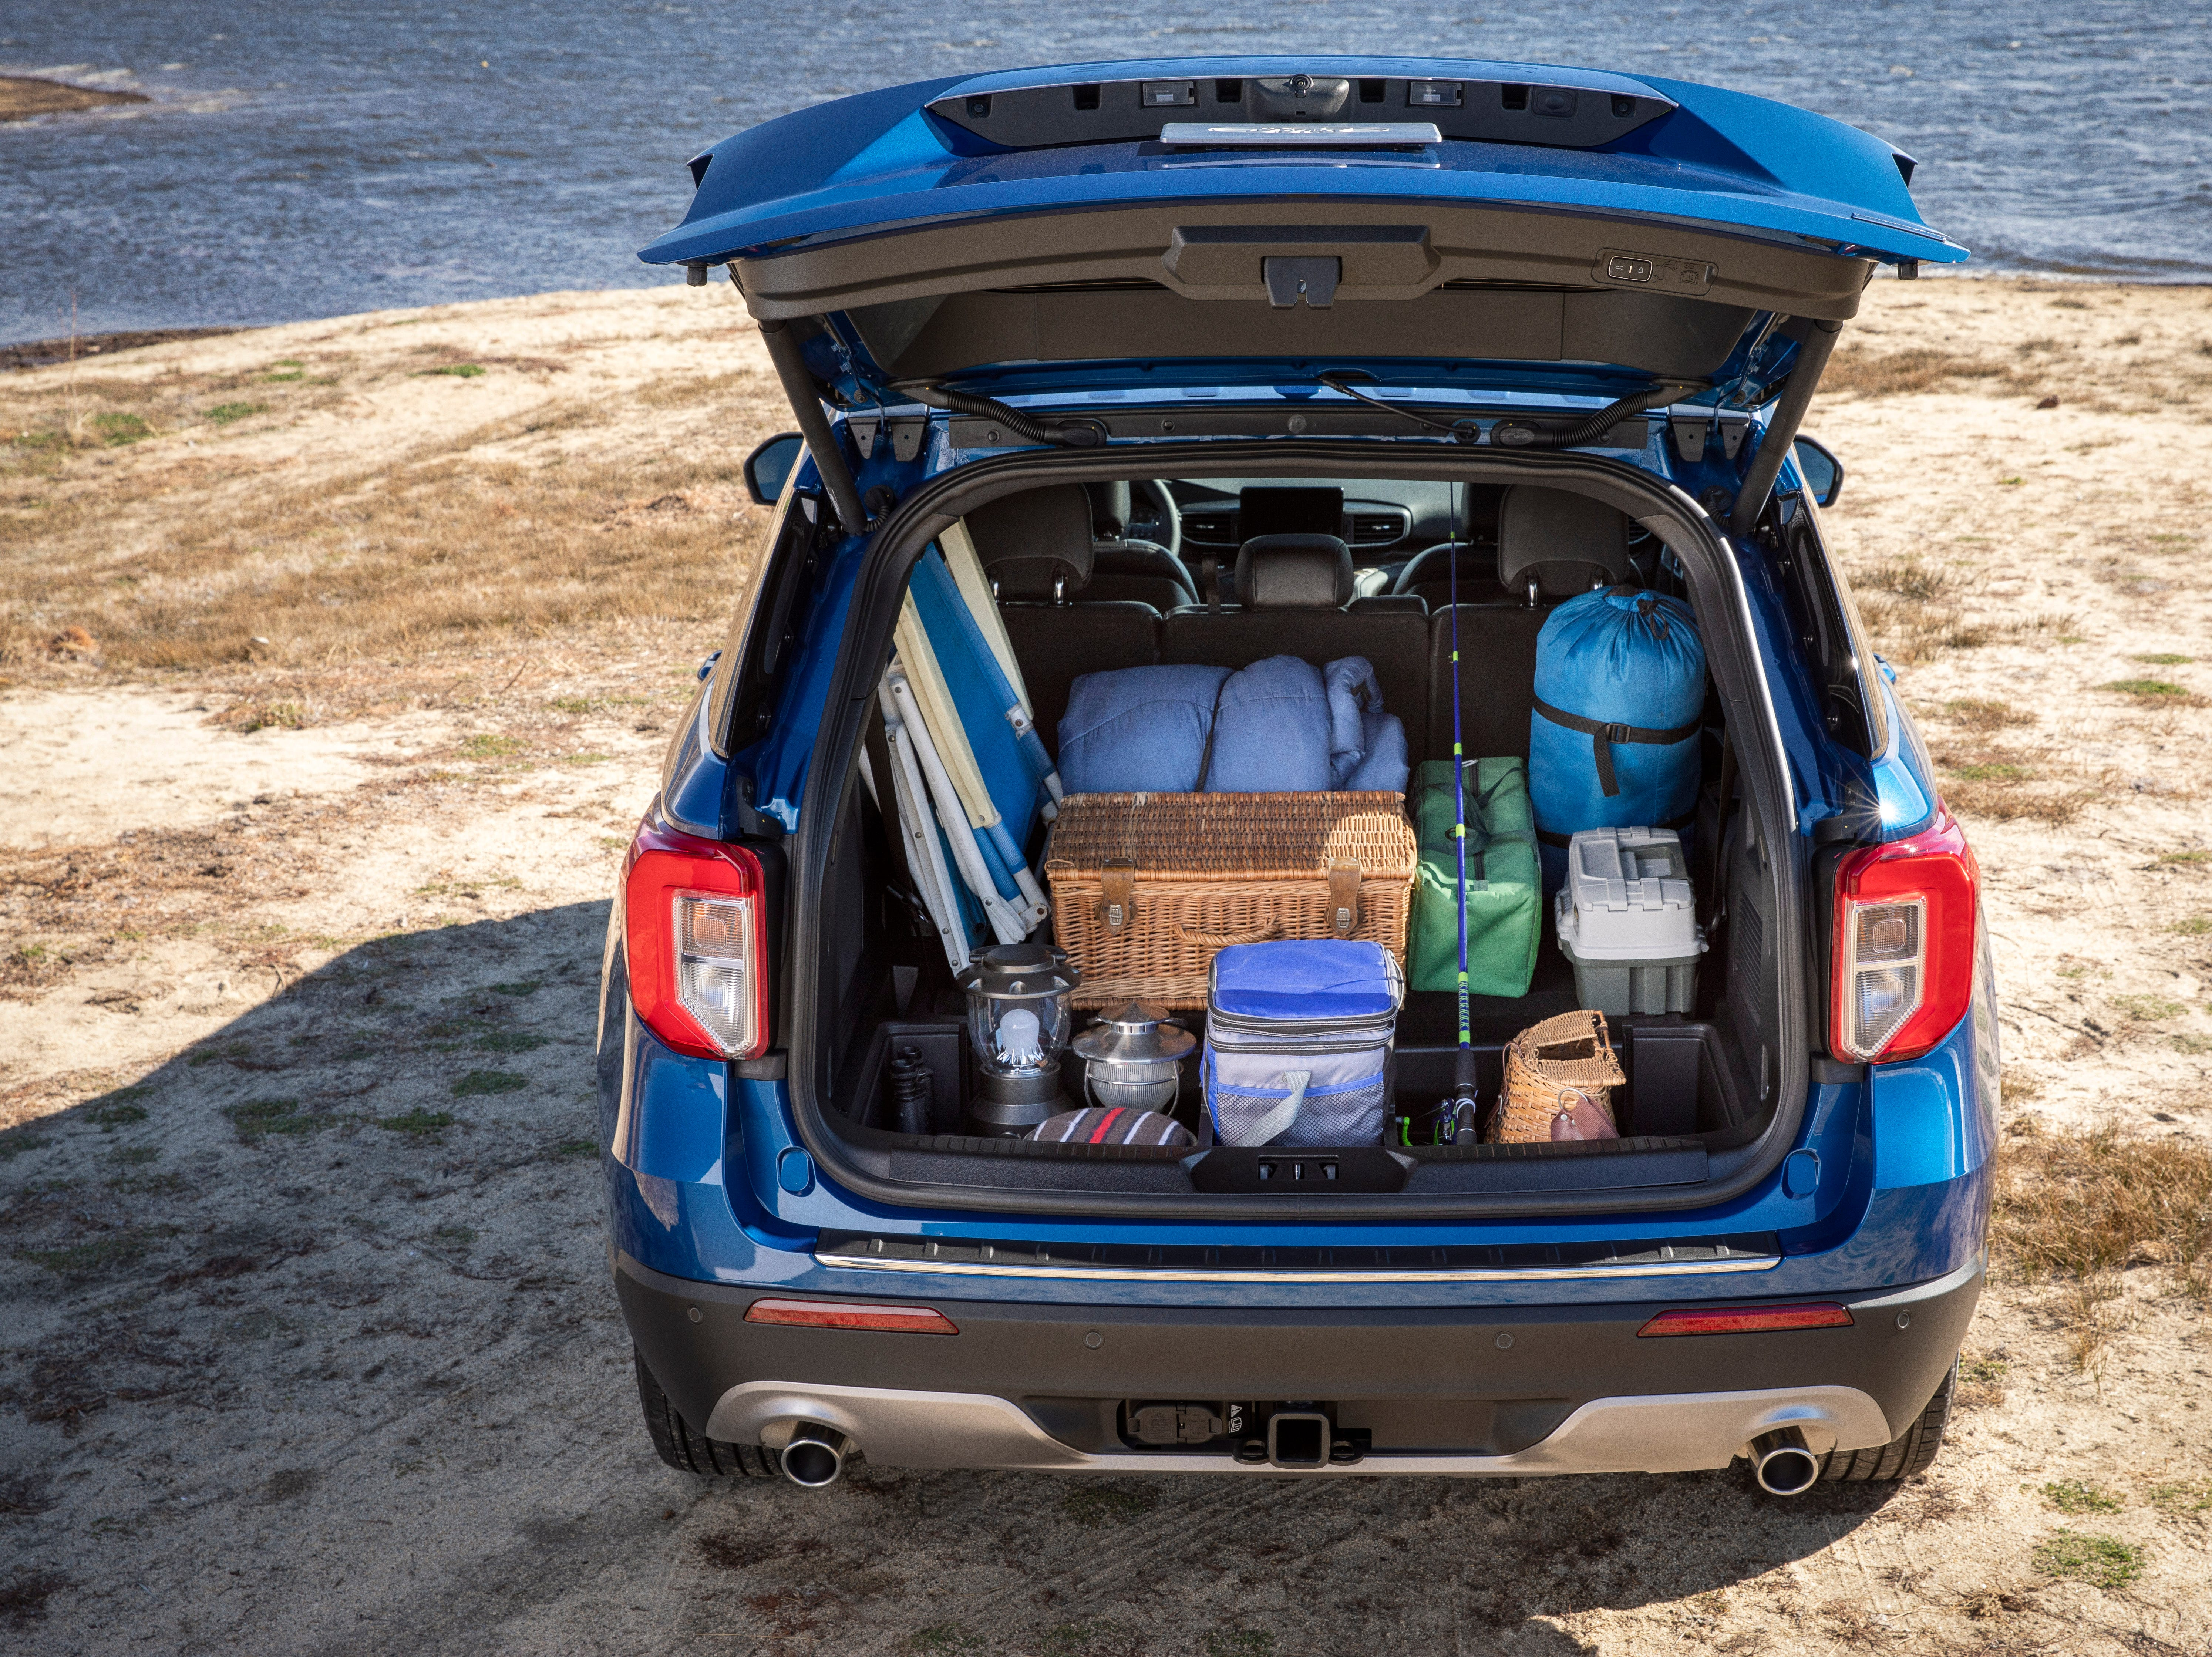 """""""For the 2020 Explorer Hybrid, an all-new 10-speed modular hybrid transmission provides SUV capability. Unlike previous hybrid vehicles, a specially designed liquid-cooled lithium-ion battery is built into the Explorer chassis below the second-row seats to preserve cargo and passenger space."""""""